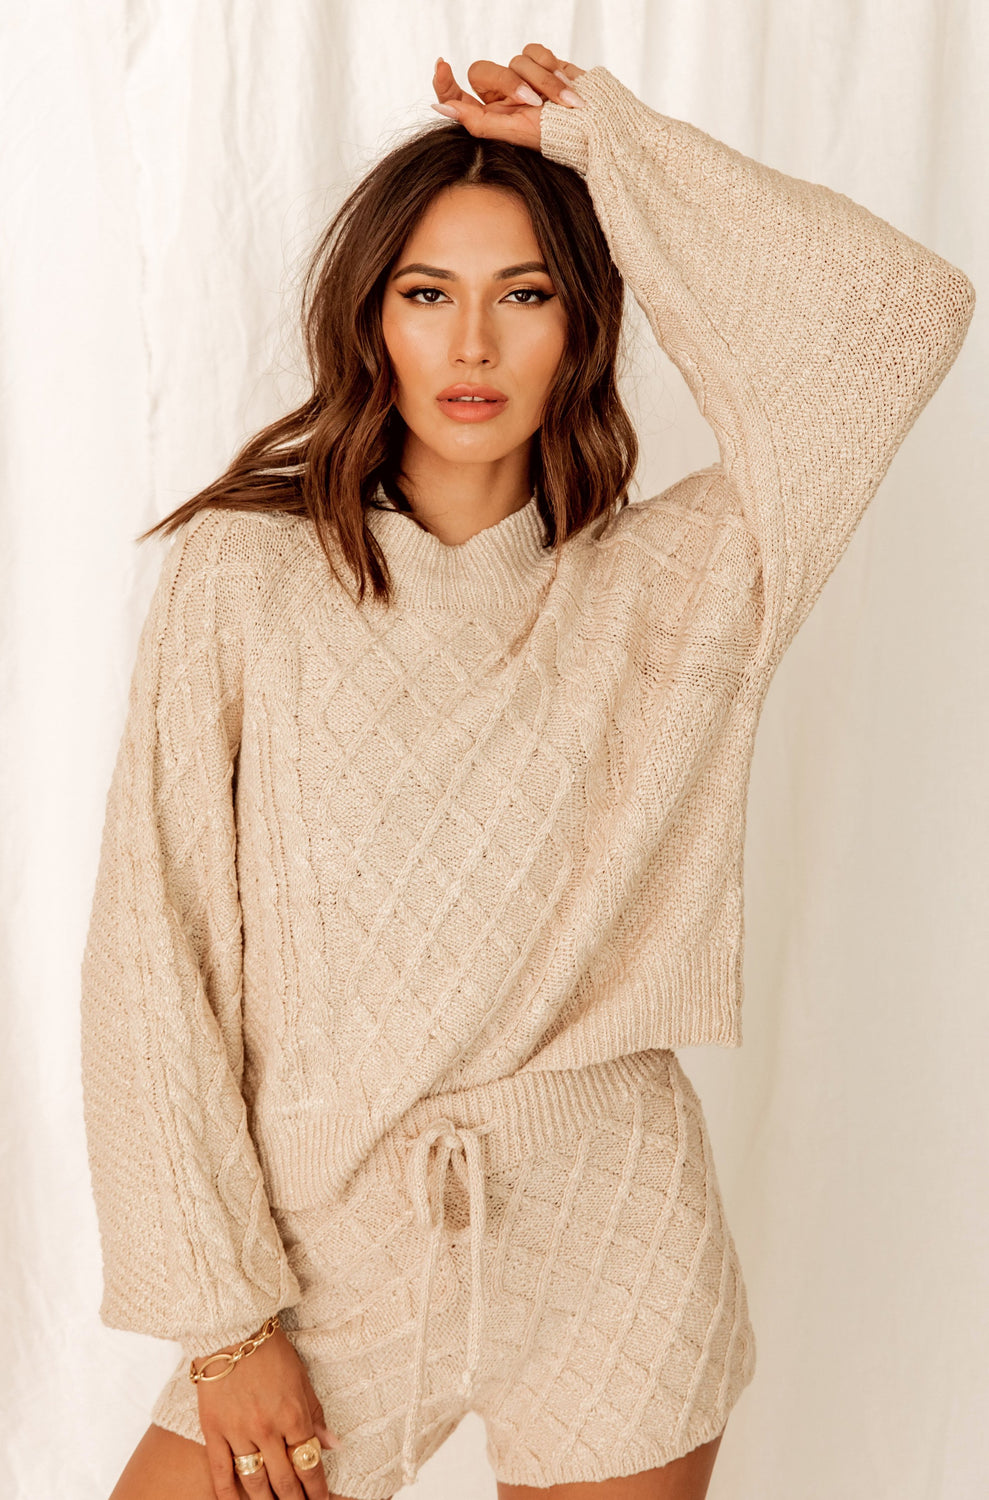 Aspen Escape Cream Sweater